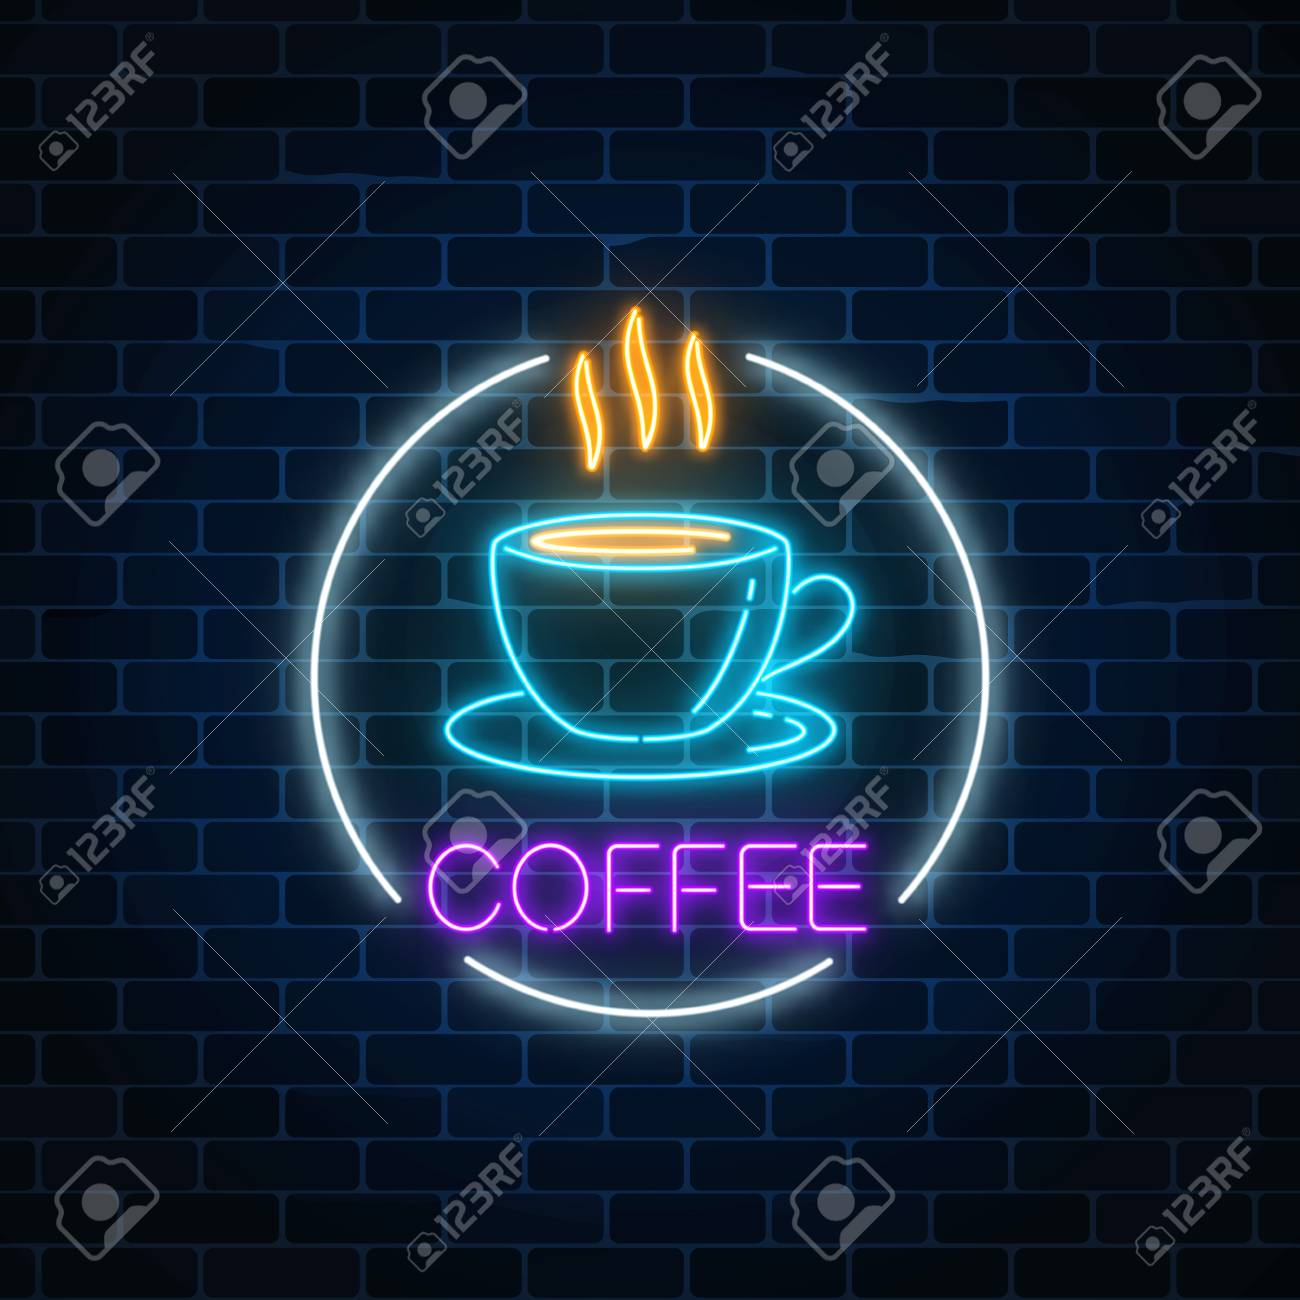 Neon Glowing Sign Of Hot Coffee Cup In Circle Frame On A Dark ...